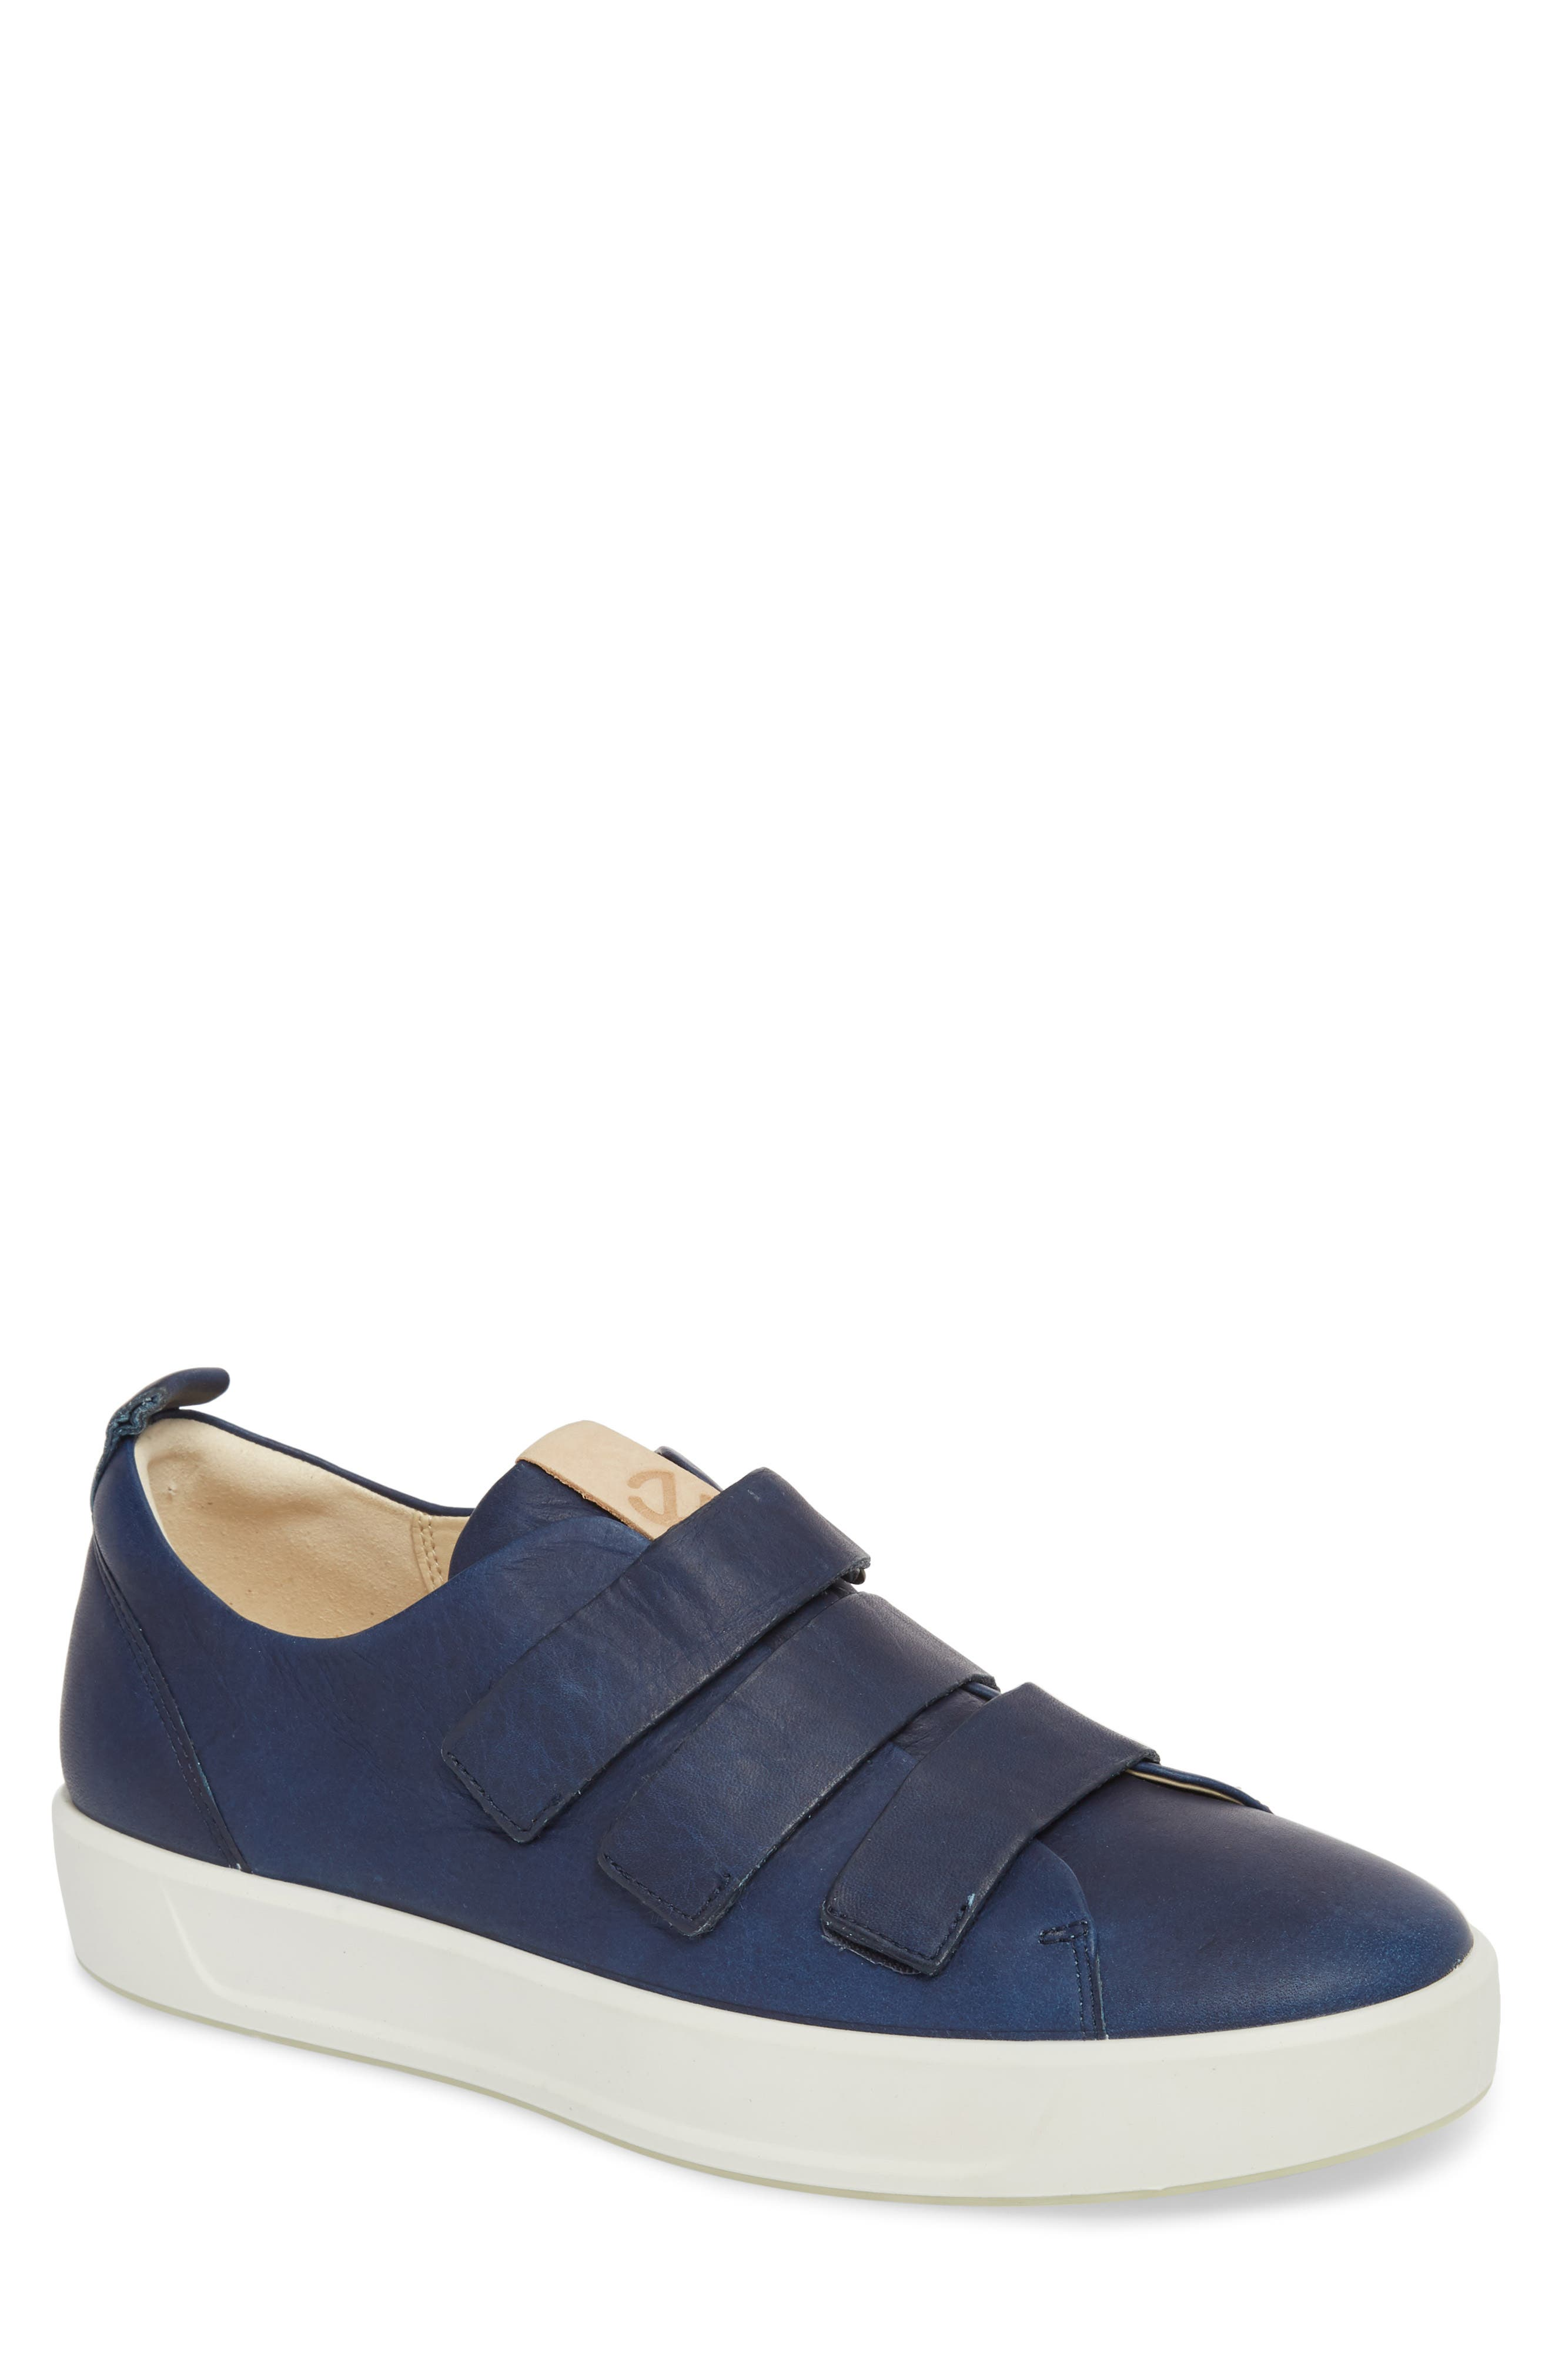 Soft 8 Strap Sneaker,                         Main,                         color, Indigo 7 Leather